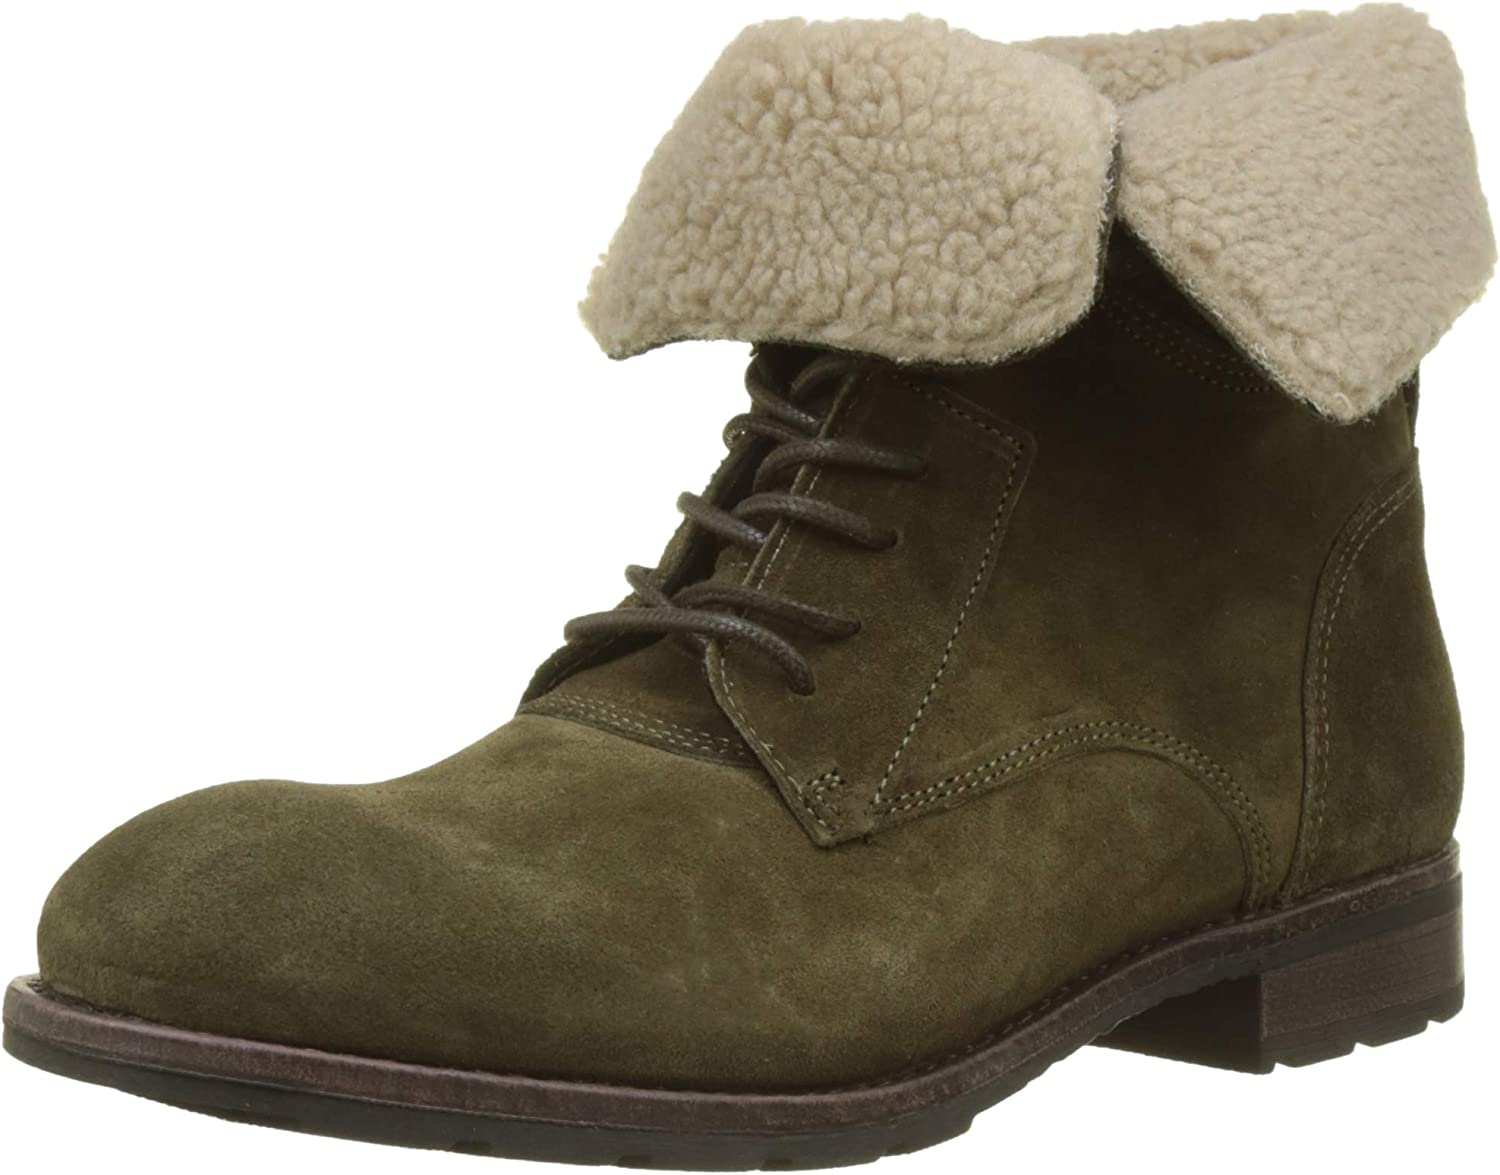 Sebago Men's Suede Boots Green